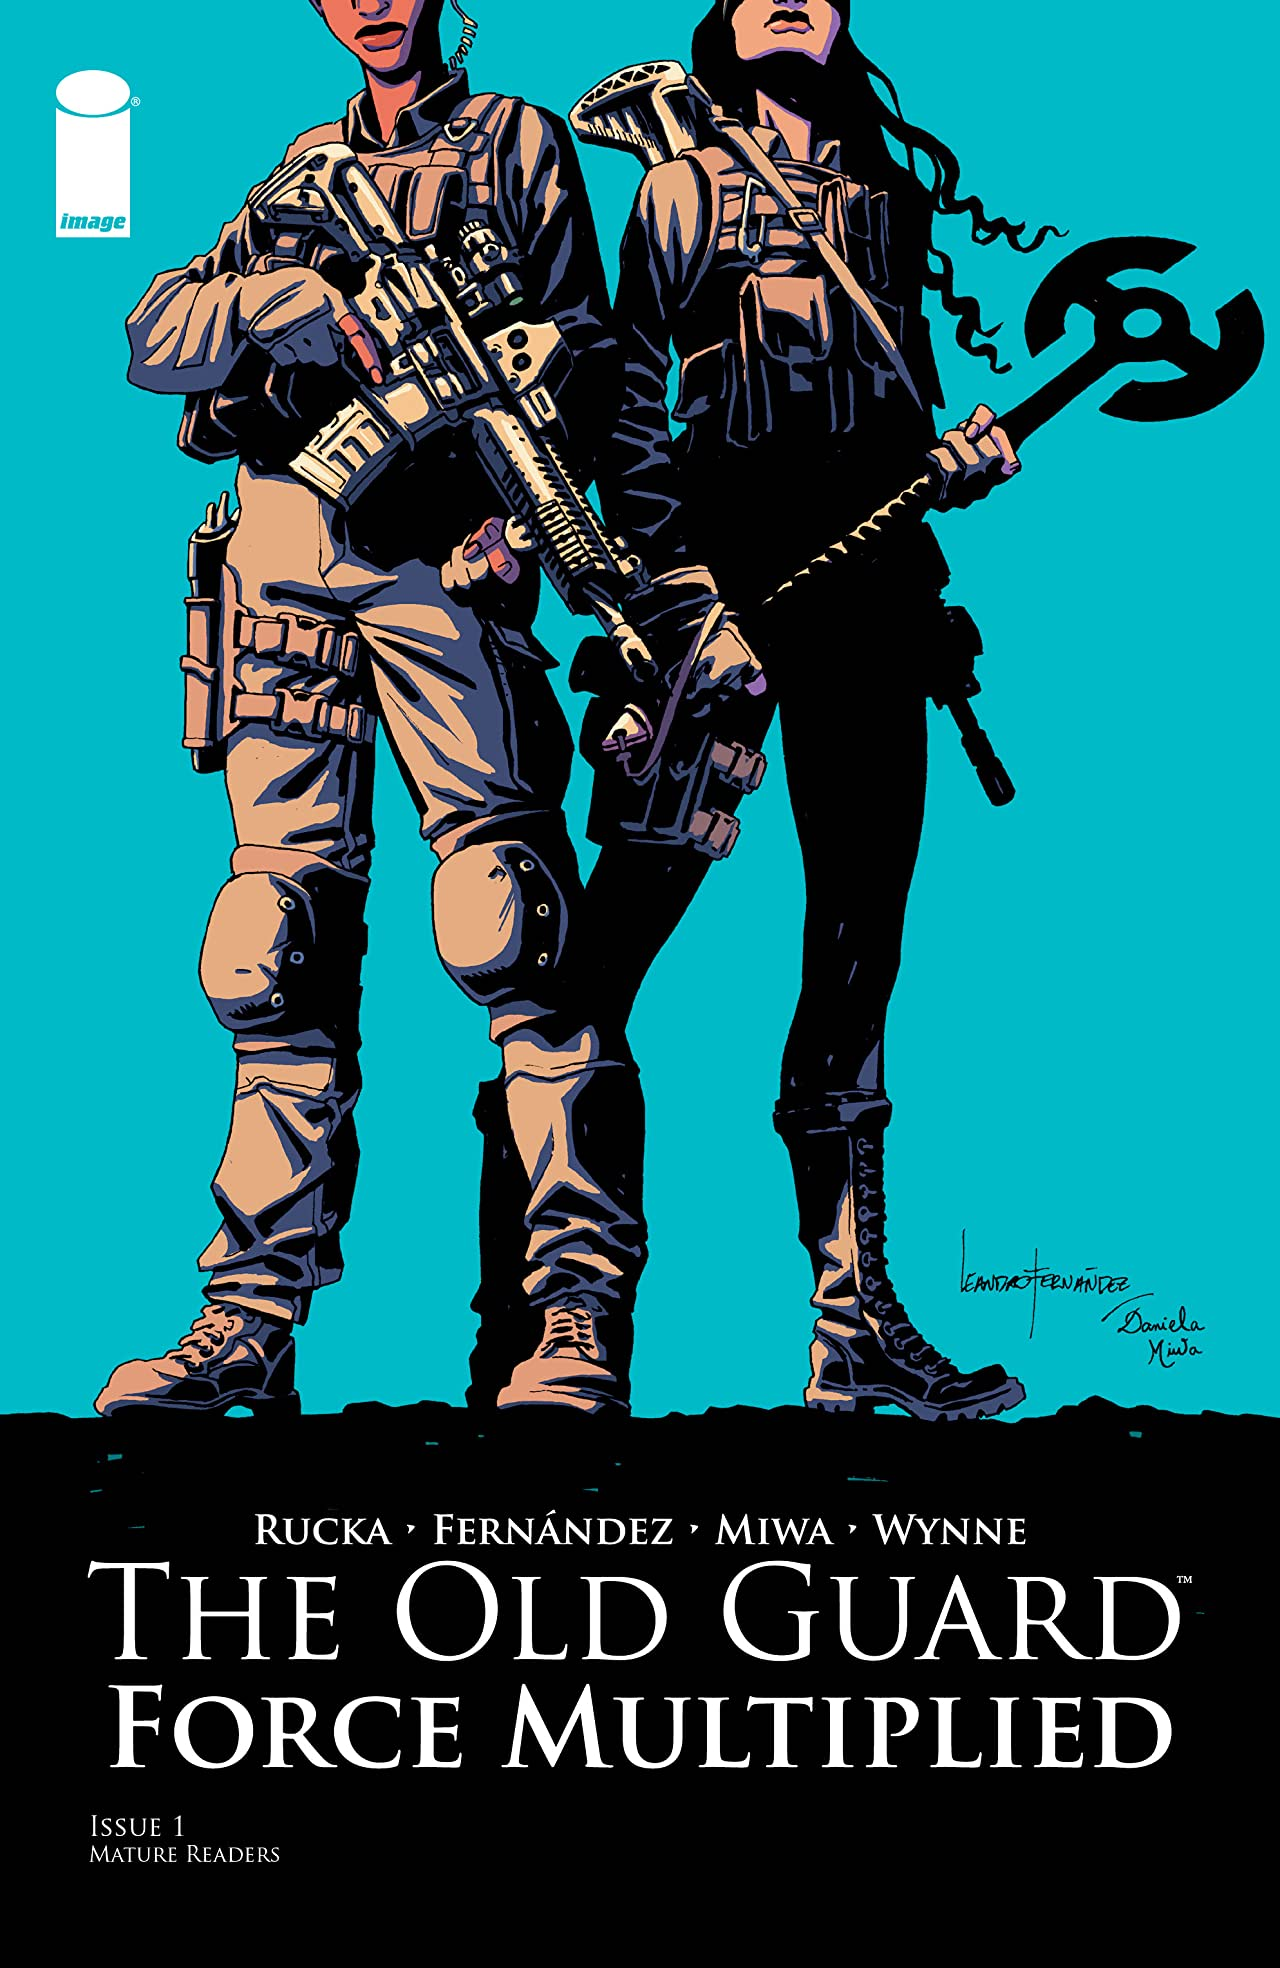 The Old Guard: Force Multiplied No.1